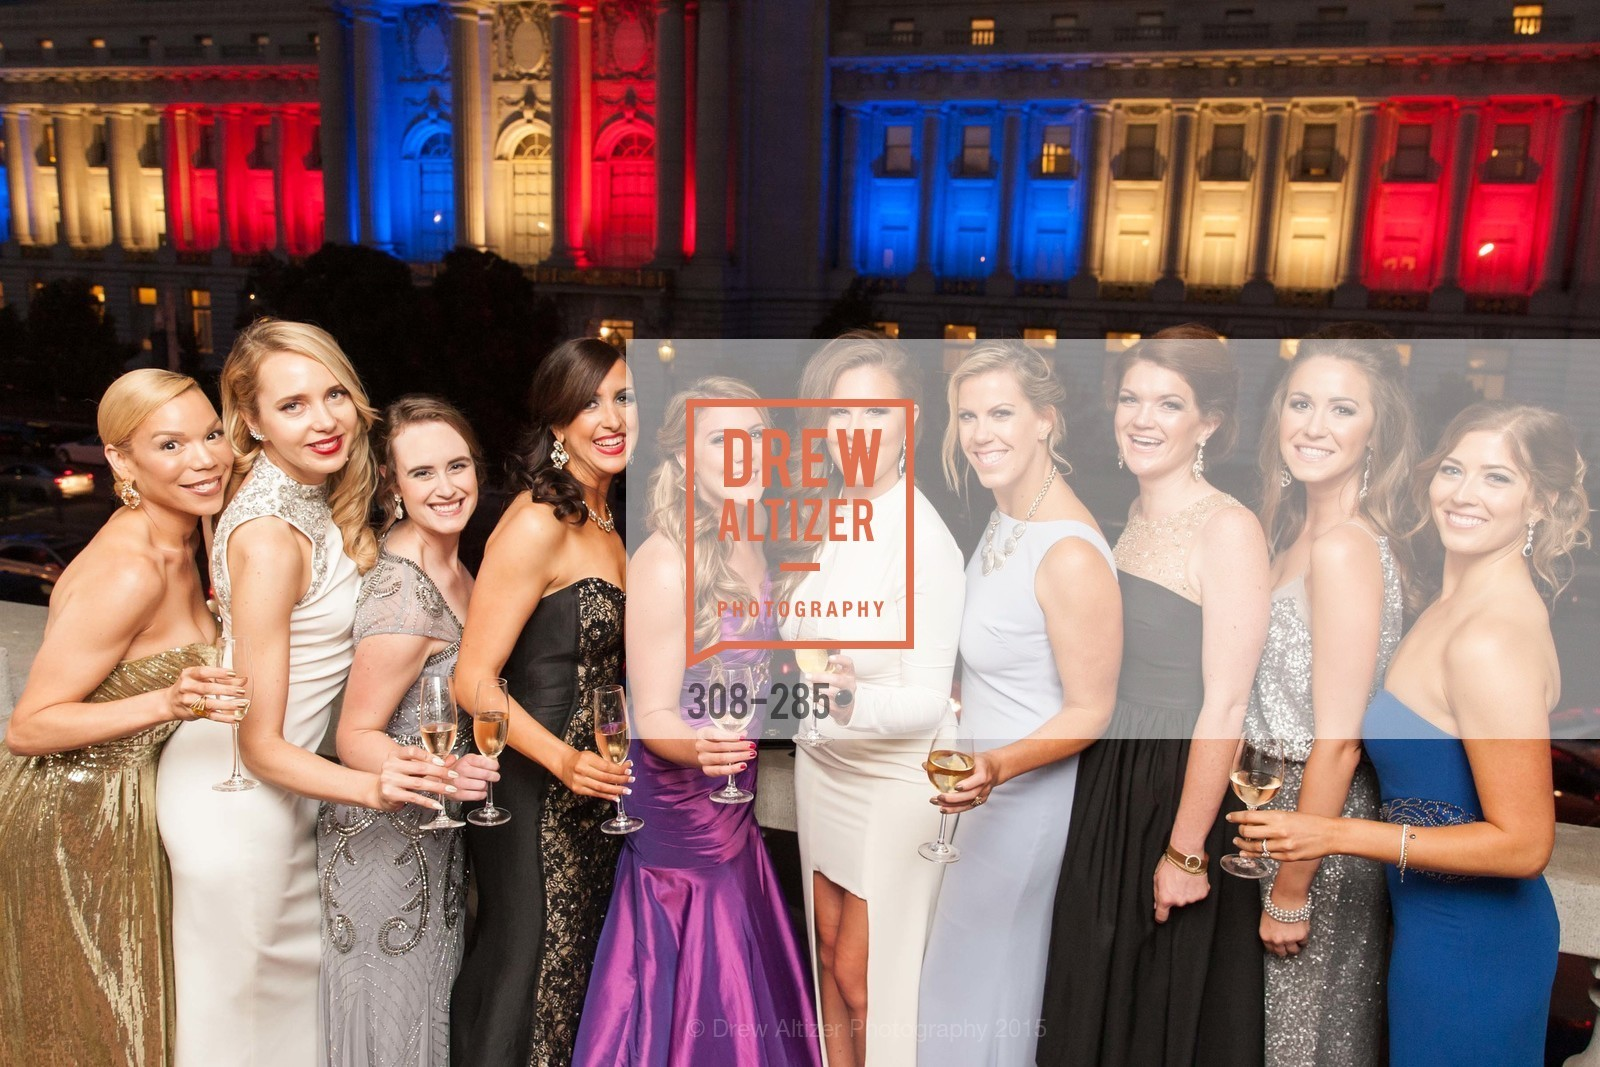 Julia Mathis, Laurie Diab, Susan Walker, Shannon Eliot, Kari Lincks, Bailey Haws, Lauren Groff, Emily Brown, Megan Graf, Victoria Weatherford, San Francisco Opera's BRAVO! CLUB Opening Night Gala, War Memorial Opera House. 301 Van Ness Ave, September 11th, 2015,Drew Altizer, Drew Altizer Photography, full-service event agency, private events, San Francisco photographer, photographer California